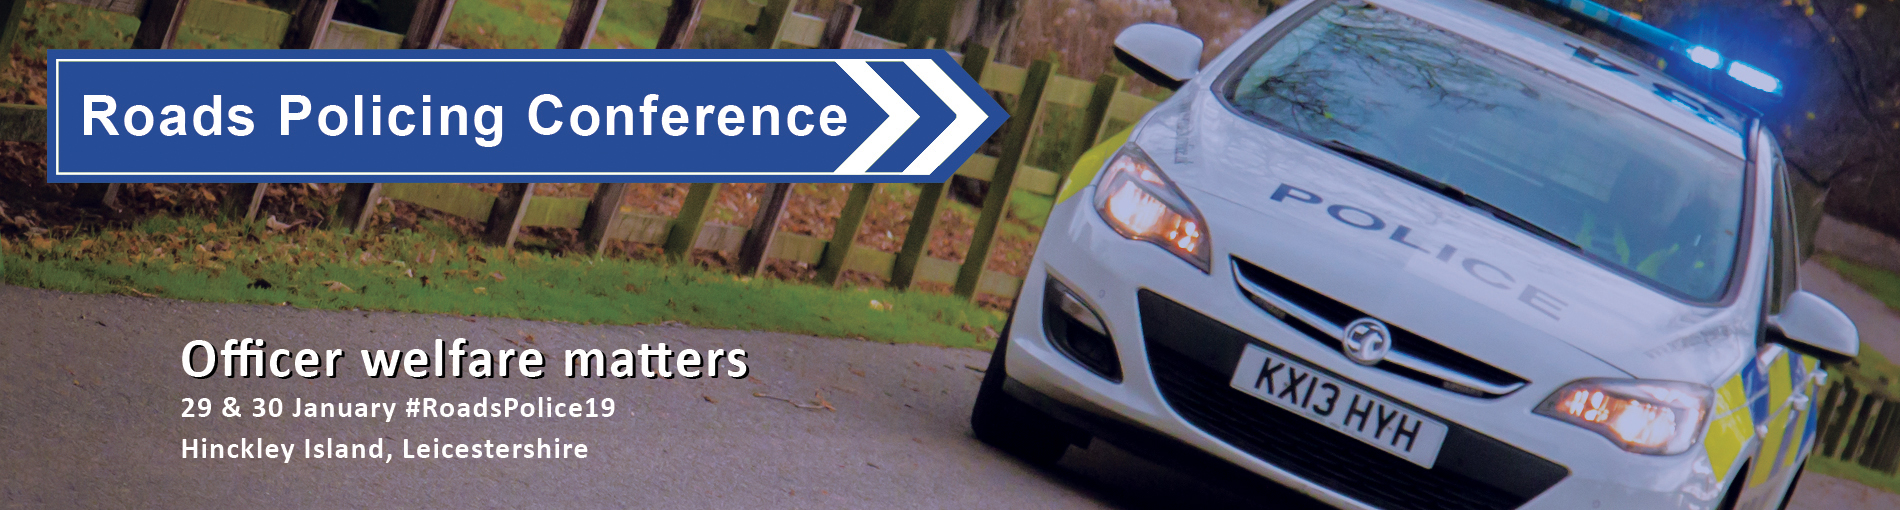 Roads Policing Conference web header